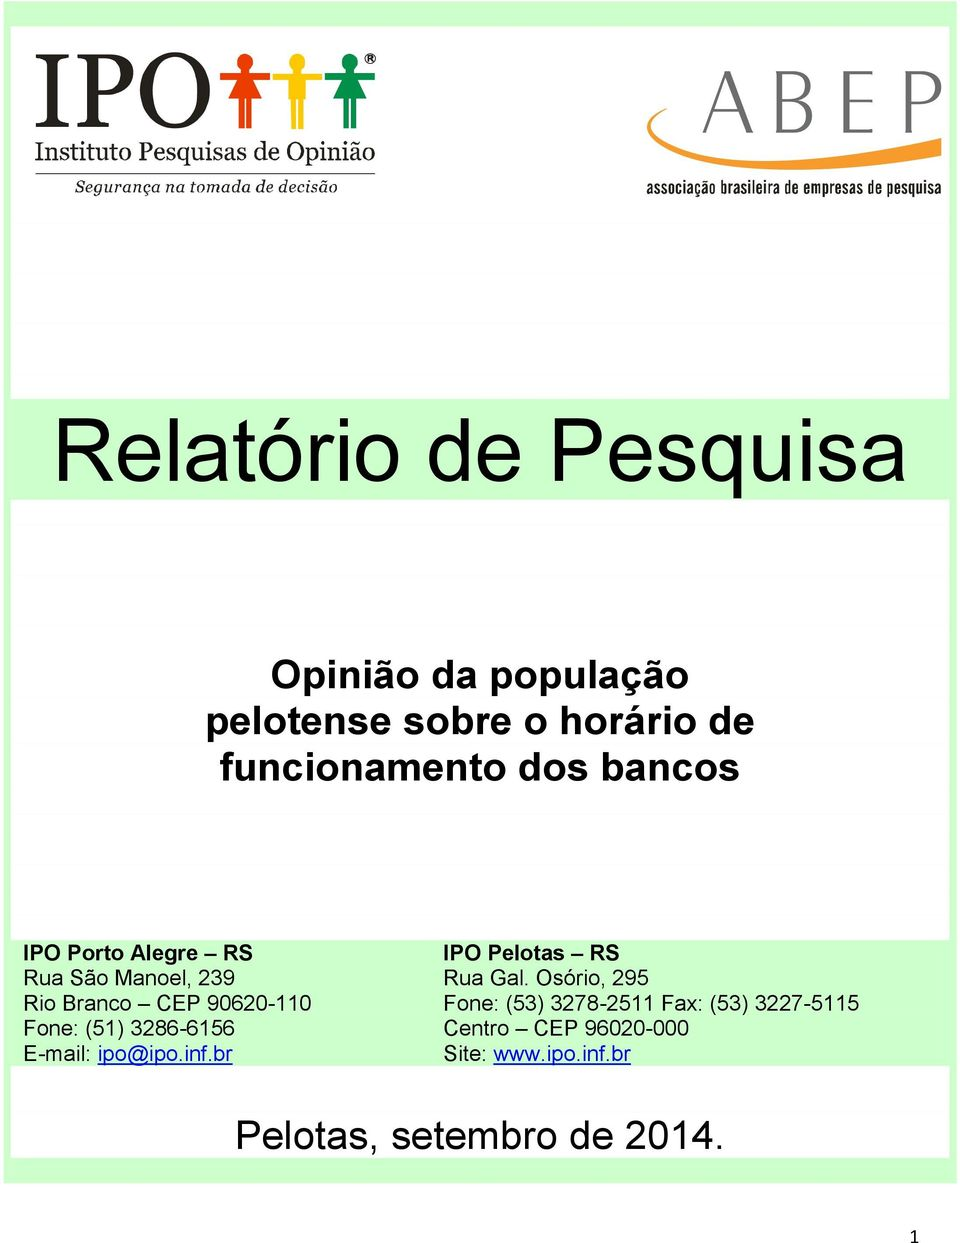 3286-6156 E-mail: ipo@ipo.inf.br IPO Pelotas RS Rua Gal.